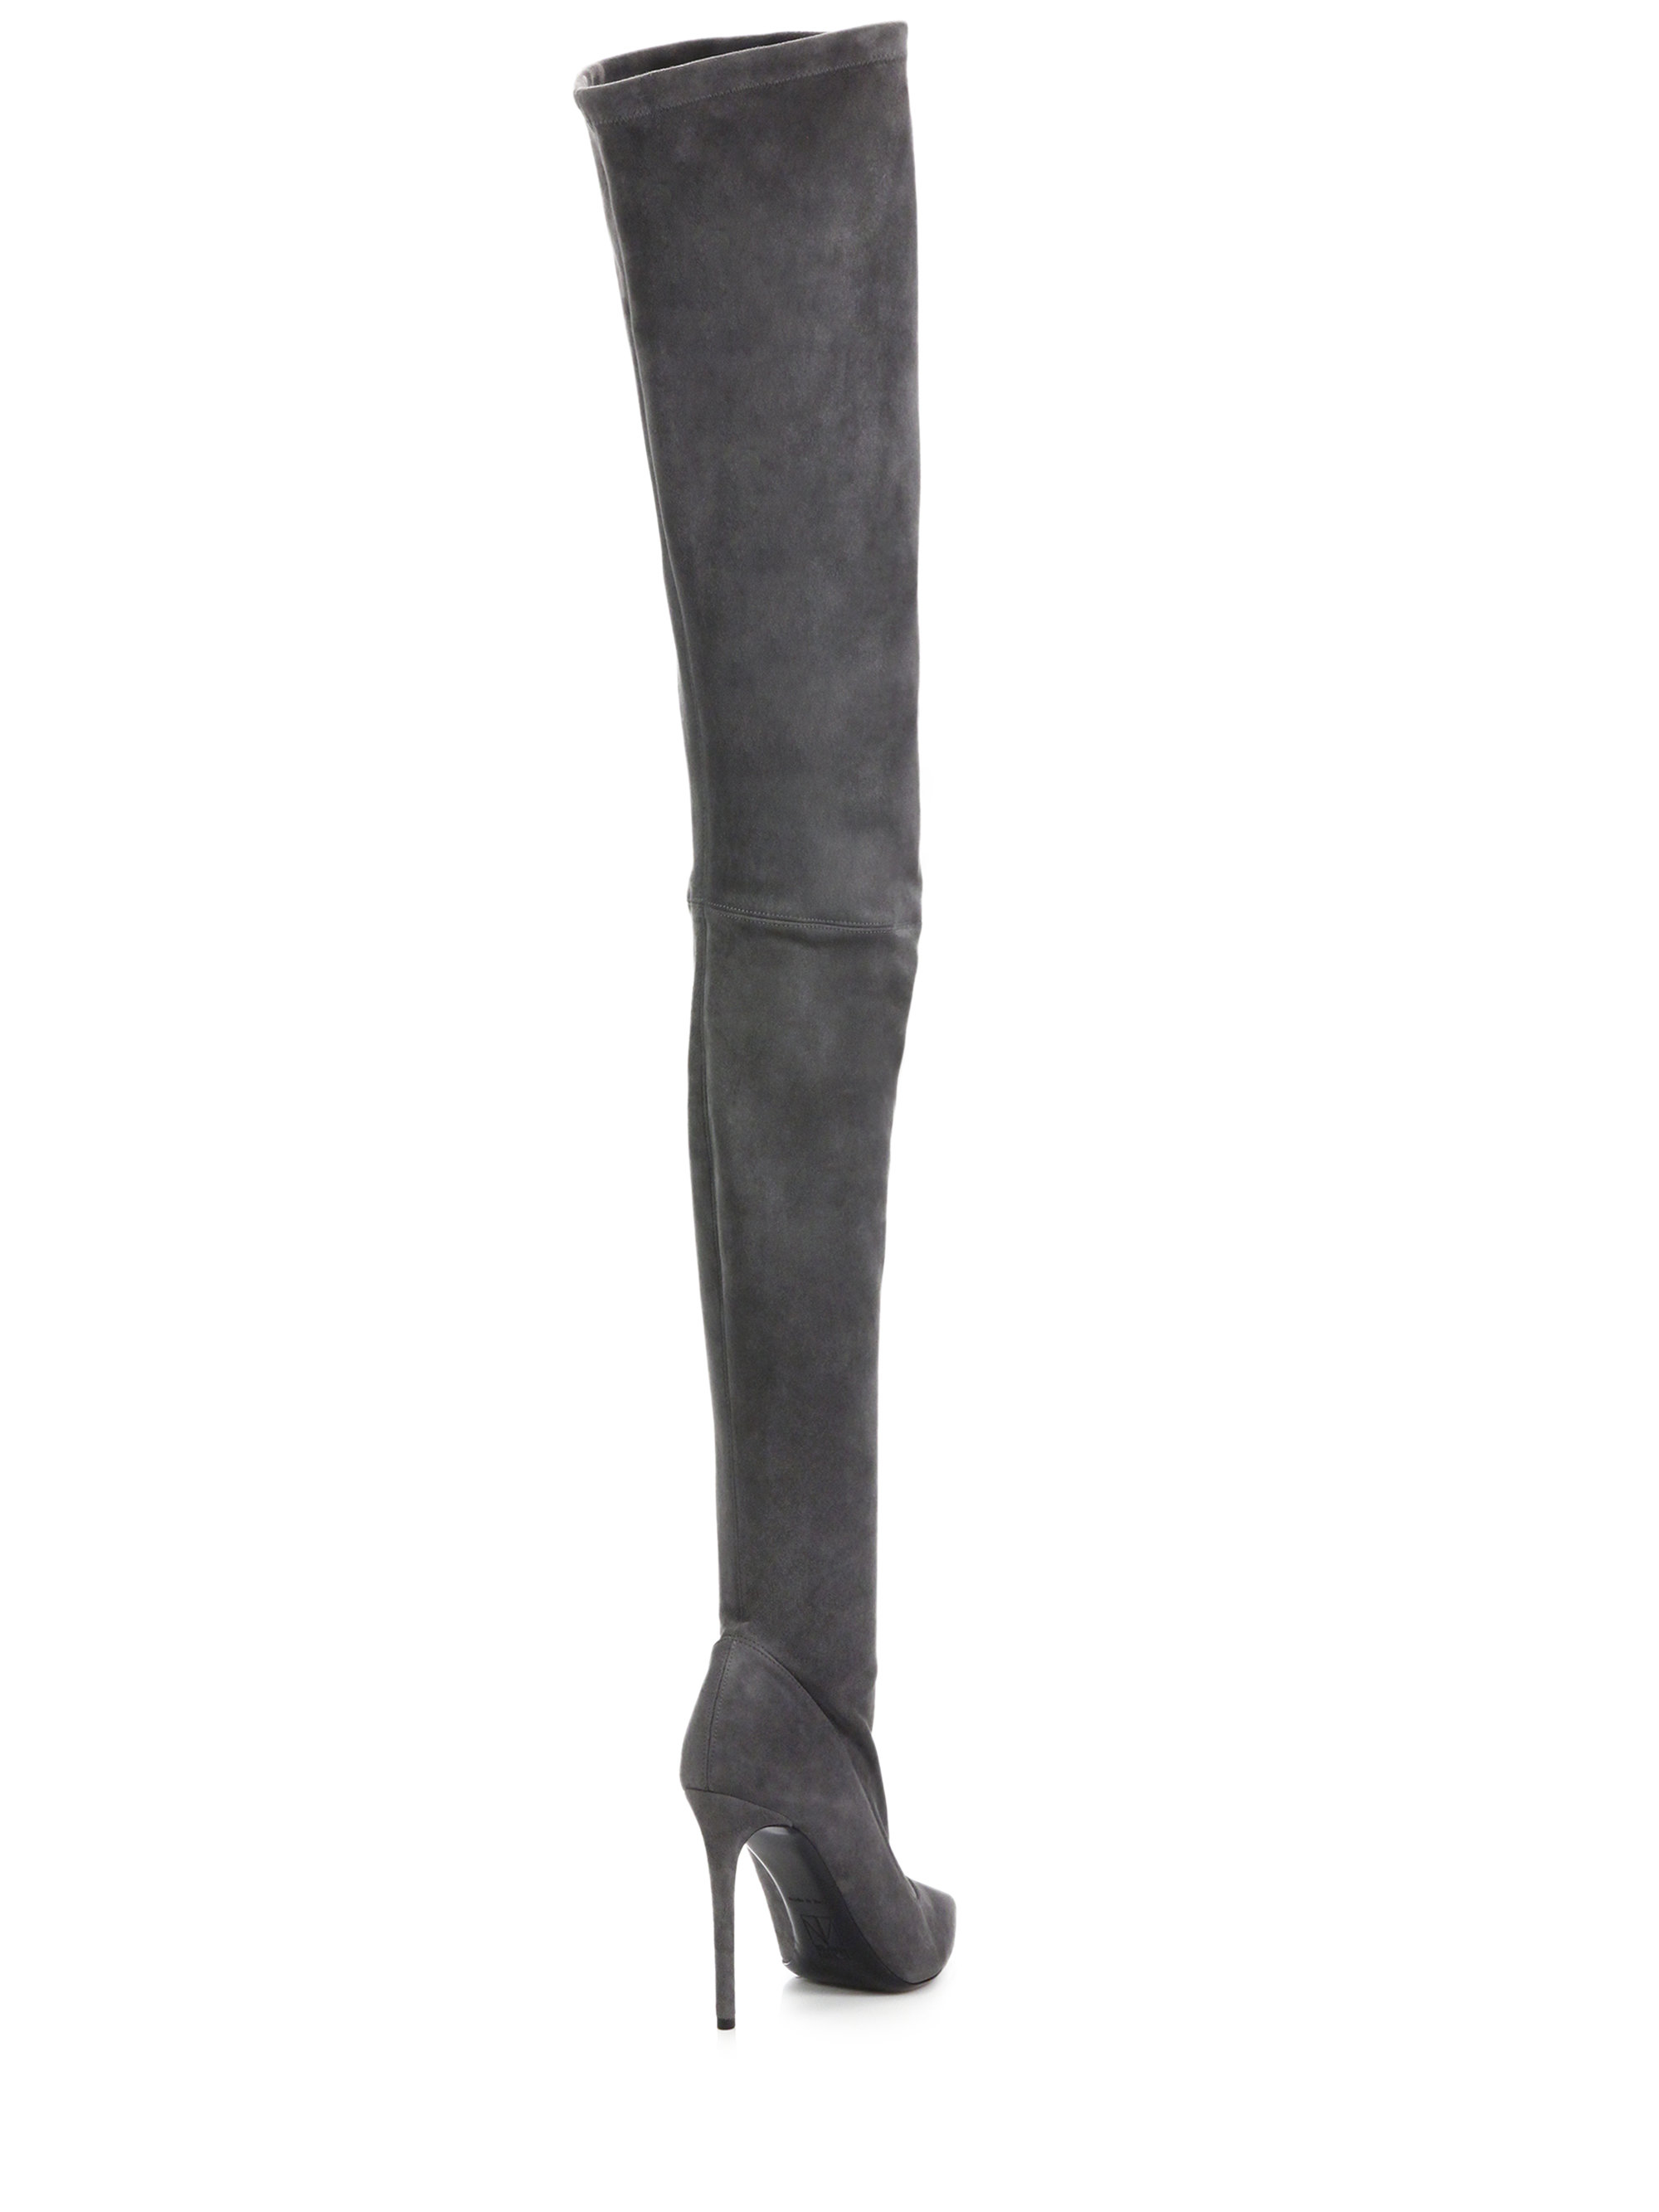 Tamara mellon Trouble Thigh-high Suede Boots in Gray | Lyst